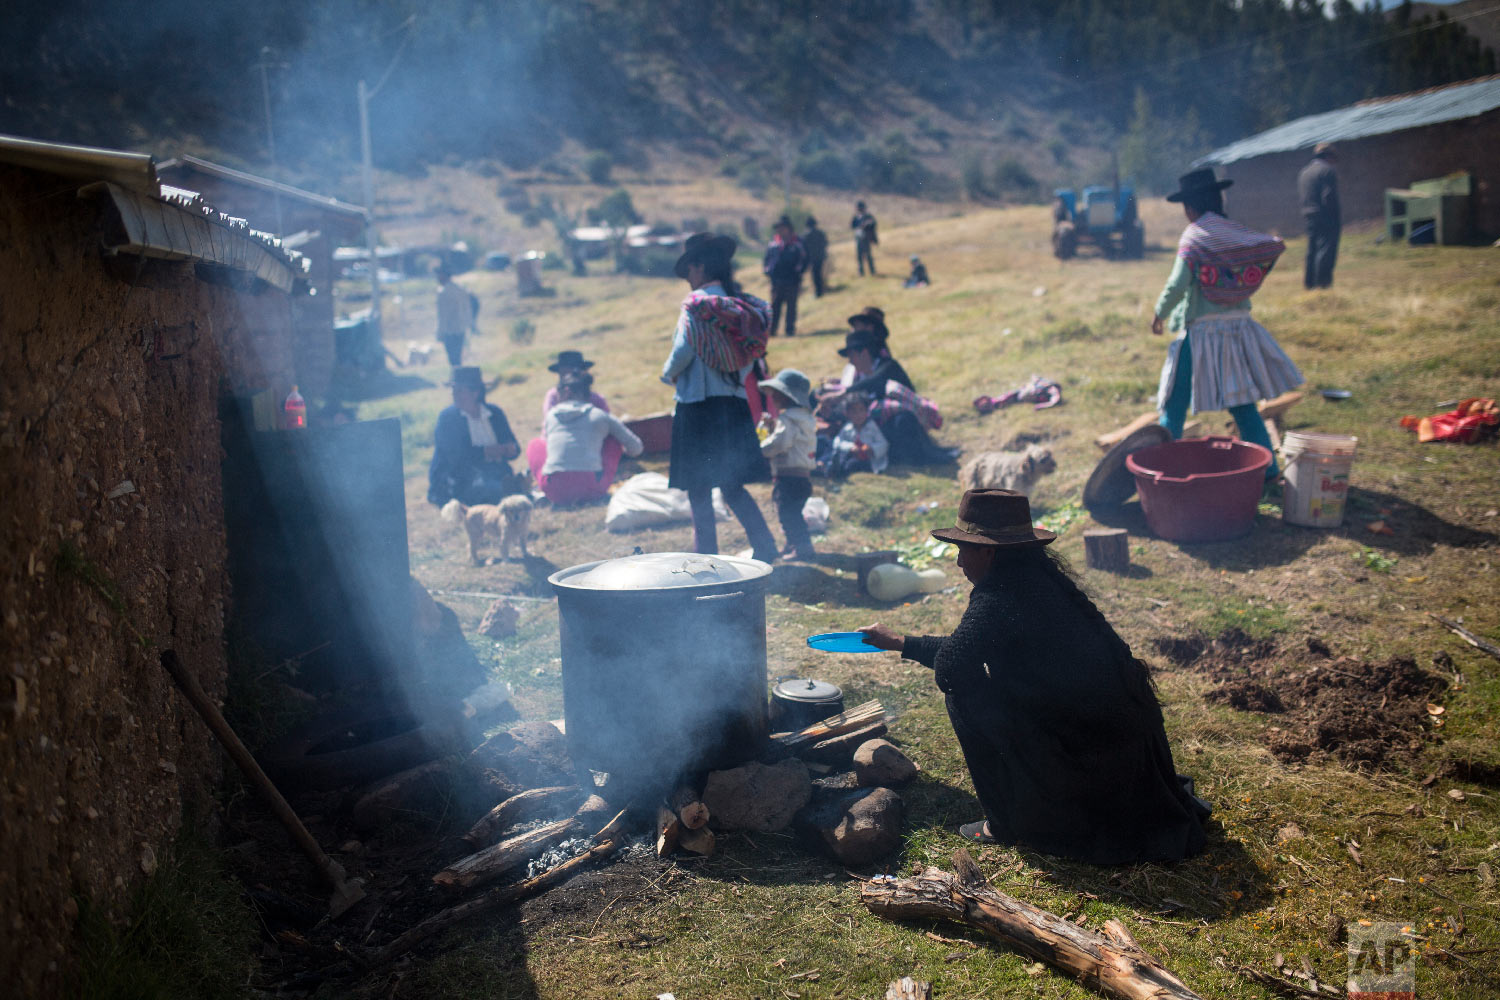 In this Aug. 15, 2018 photo, the relatives of villagers who were killed by the Shining Path guerrillas and the Peruvian army in the 1980s cook lunch after giving their loved ones a proper burial in Quinuas, in Peru's Ayacucho province. (AP Photo/Rodrigo Abd)